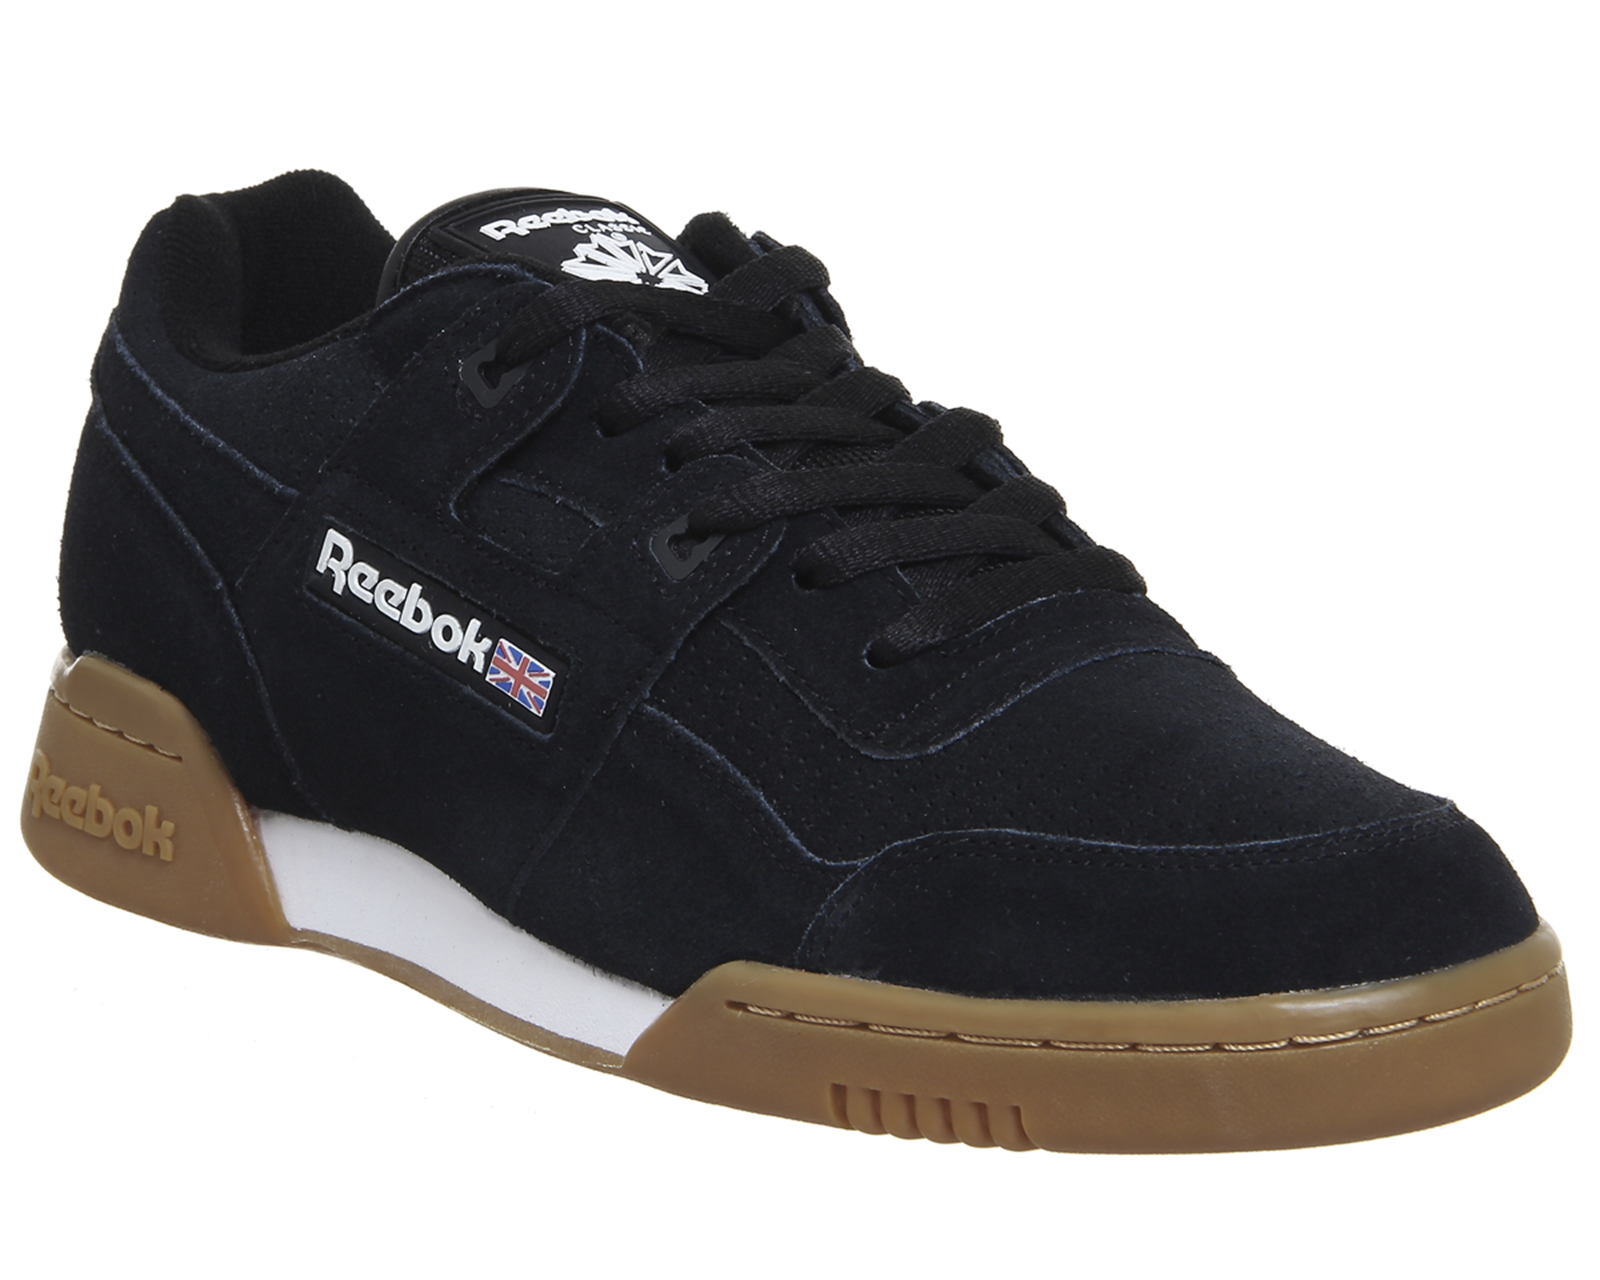 Reebok Workout Plus Black Gum Earth His trainers